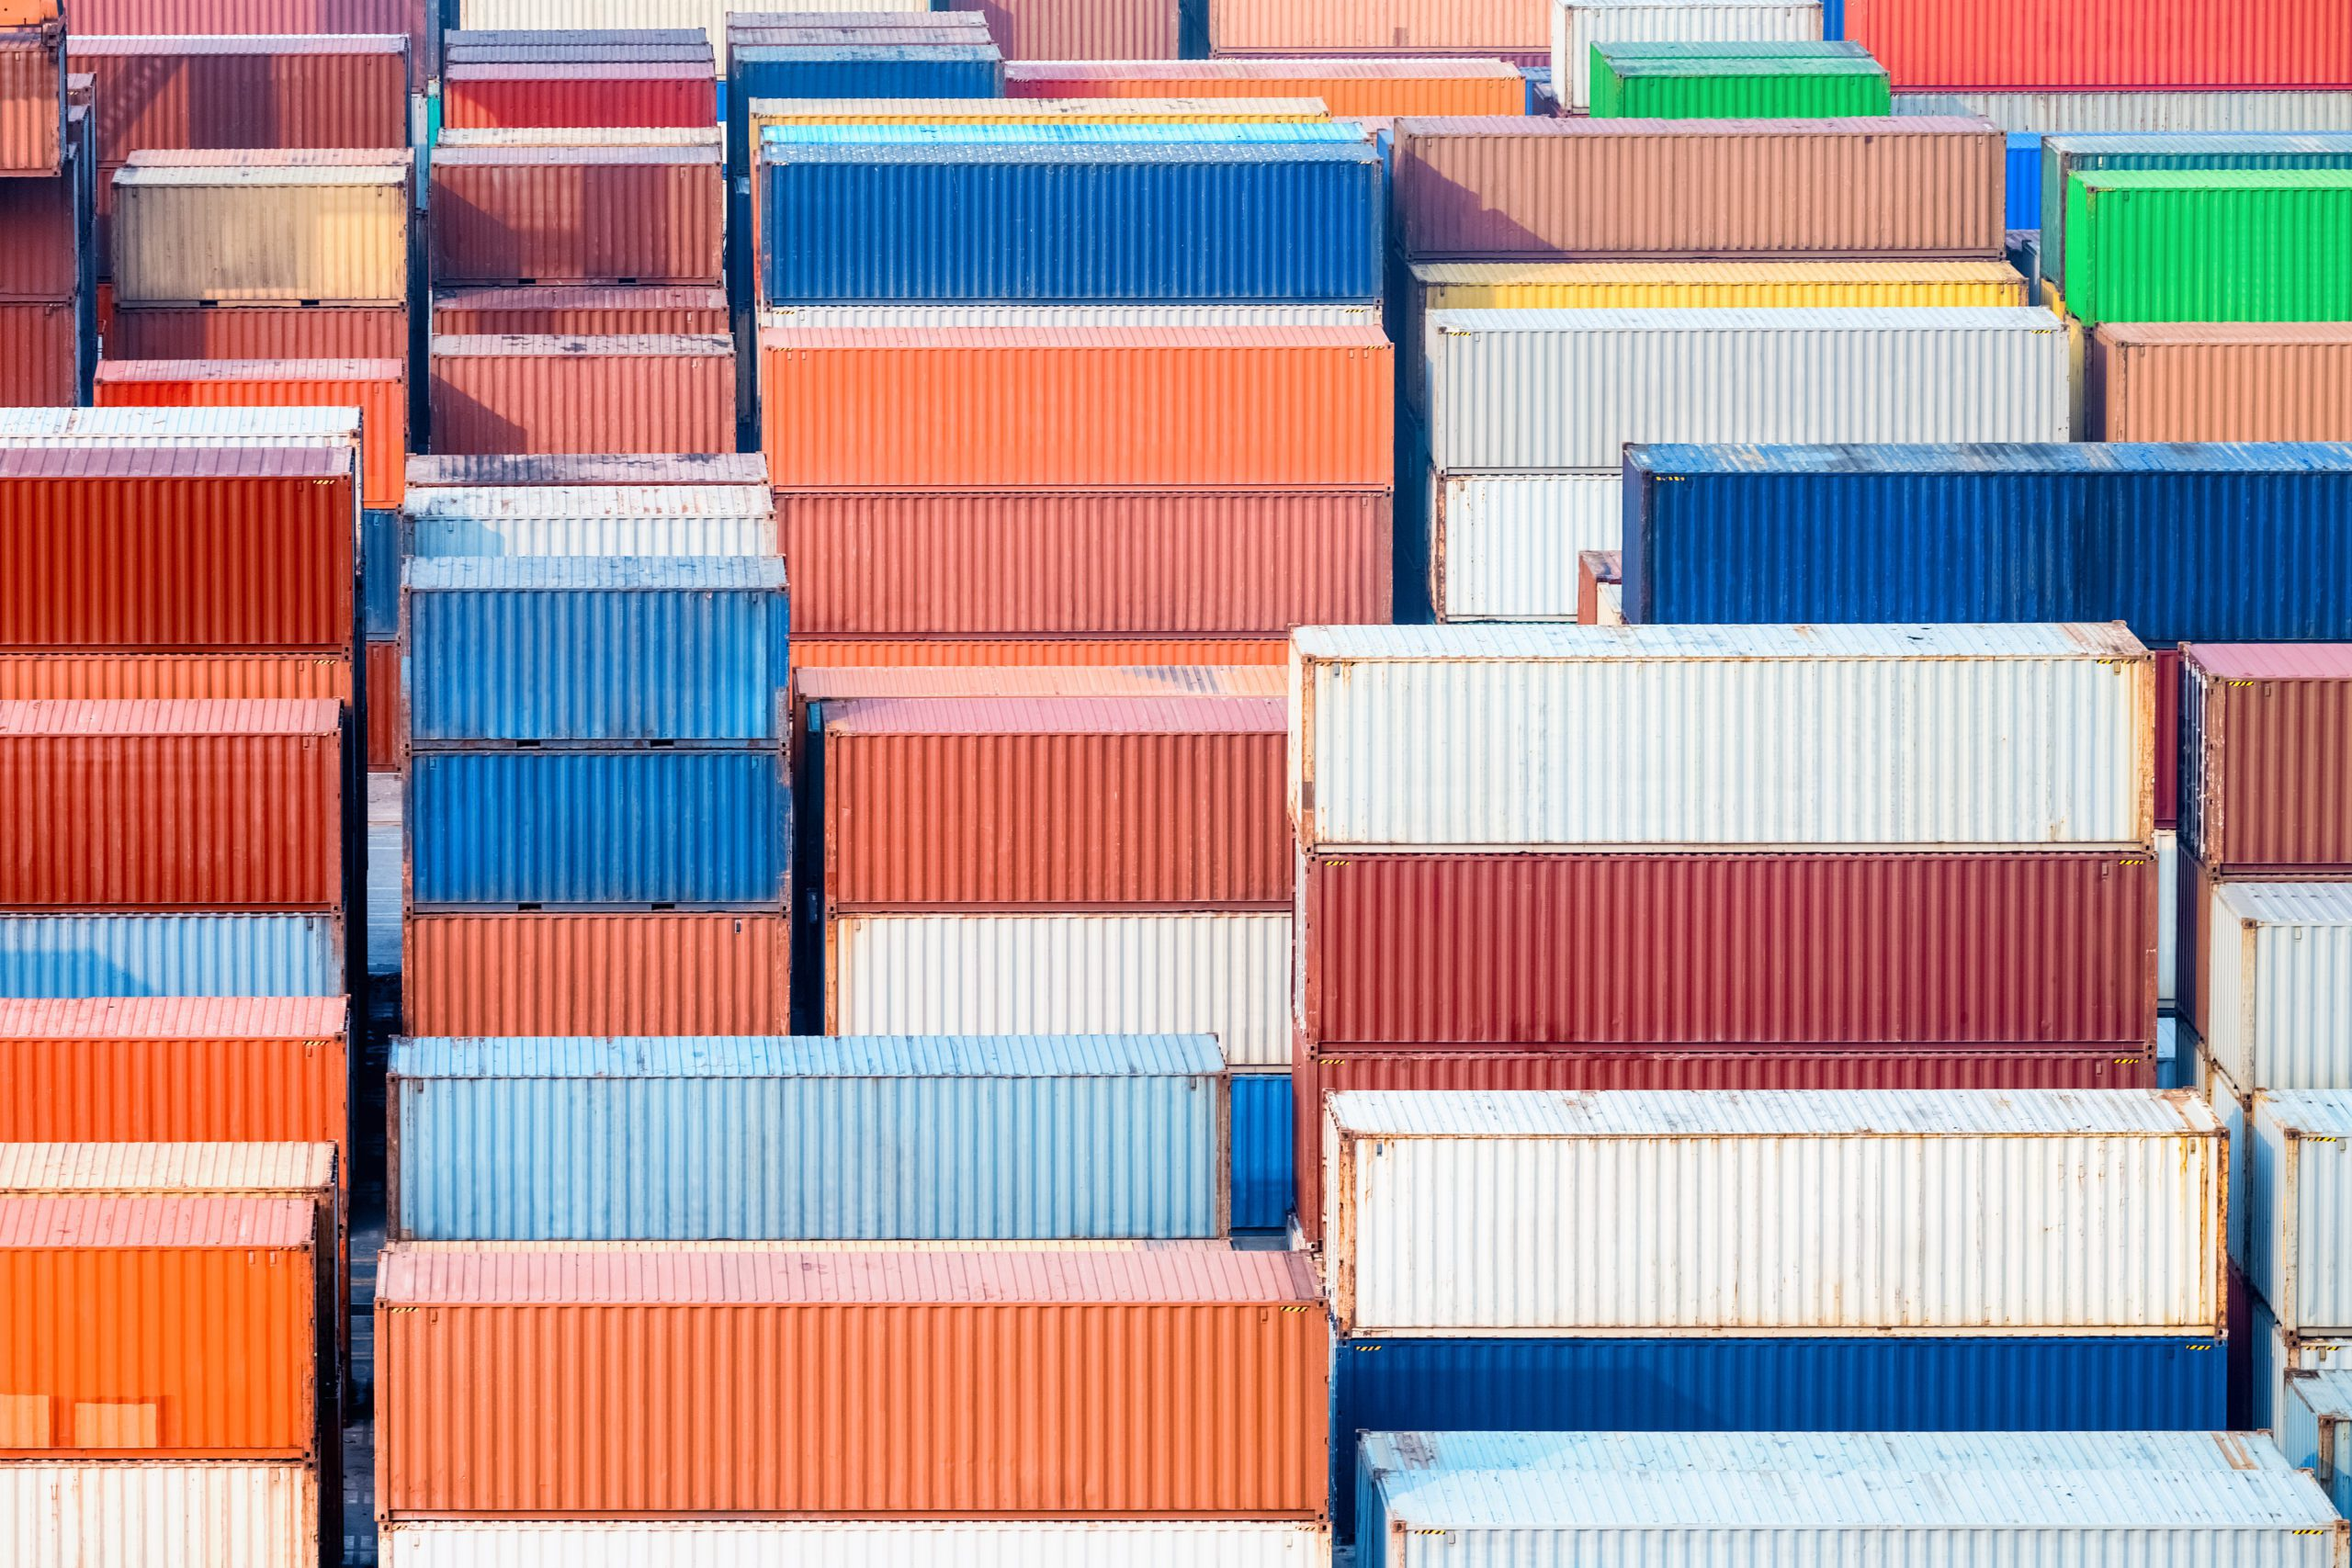 container freight station, modern logistics background